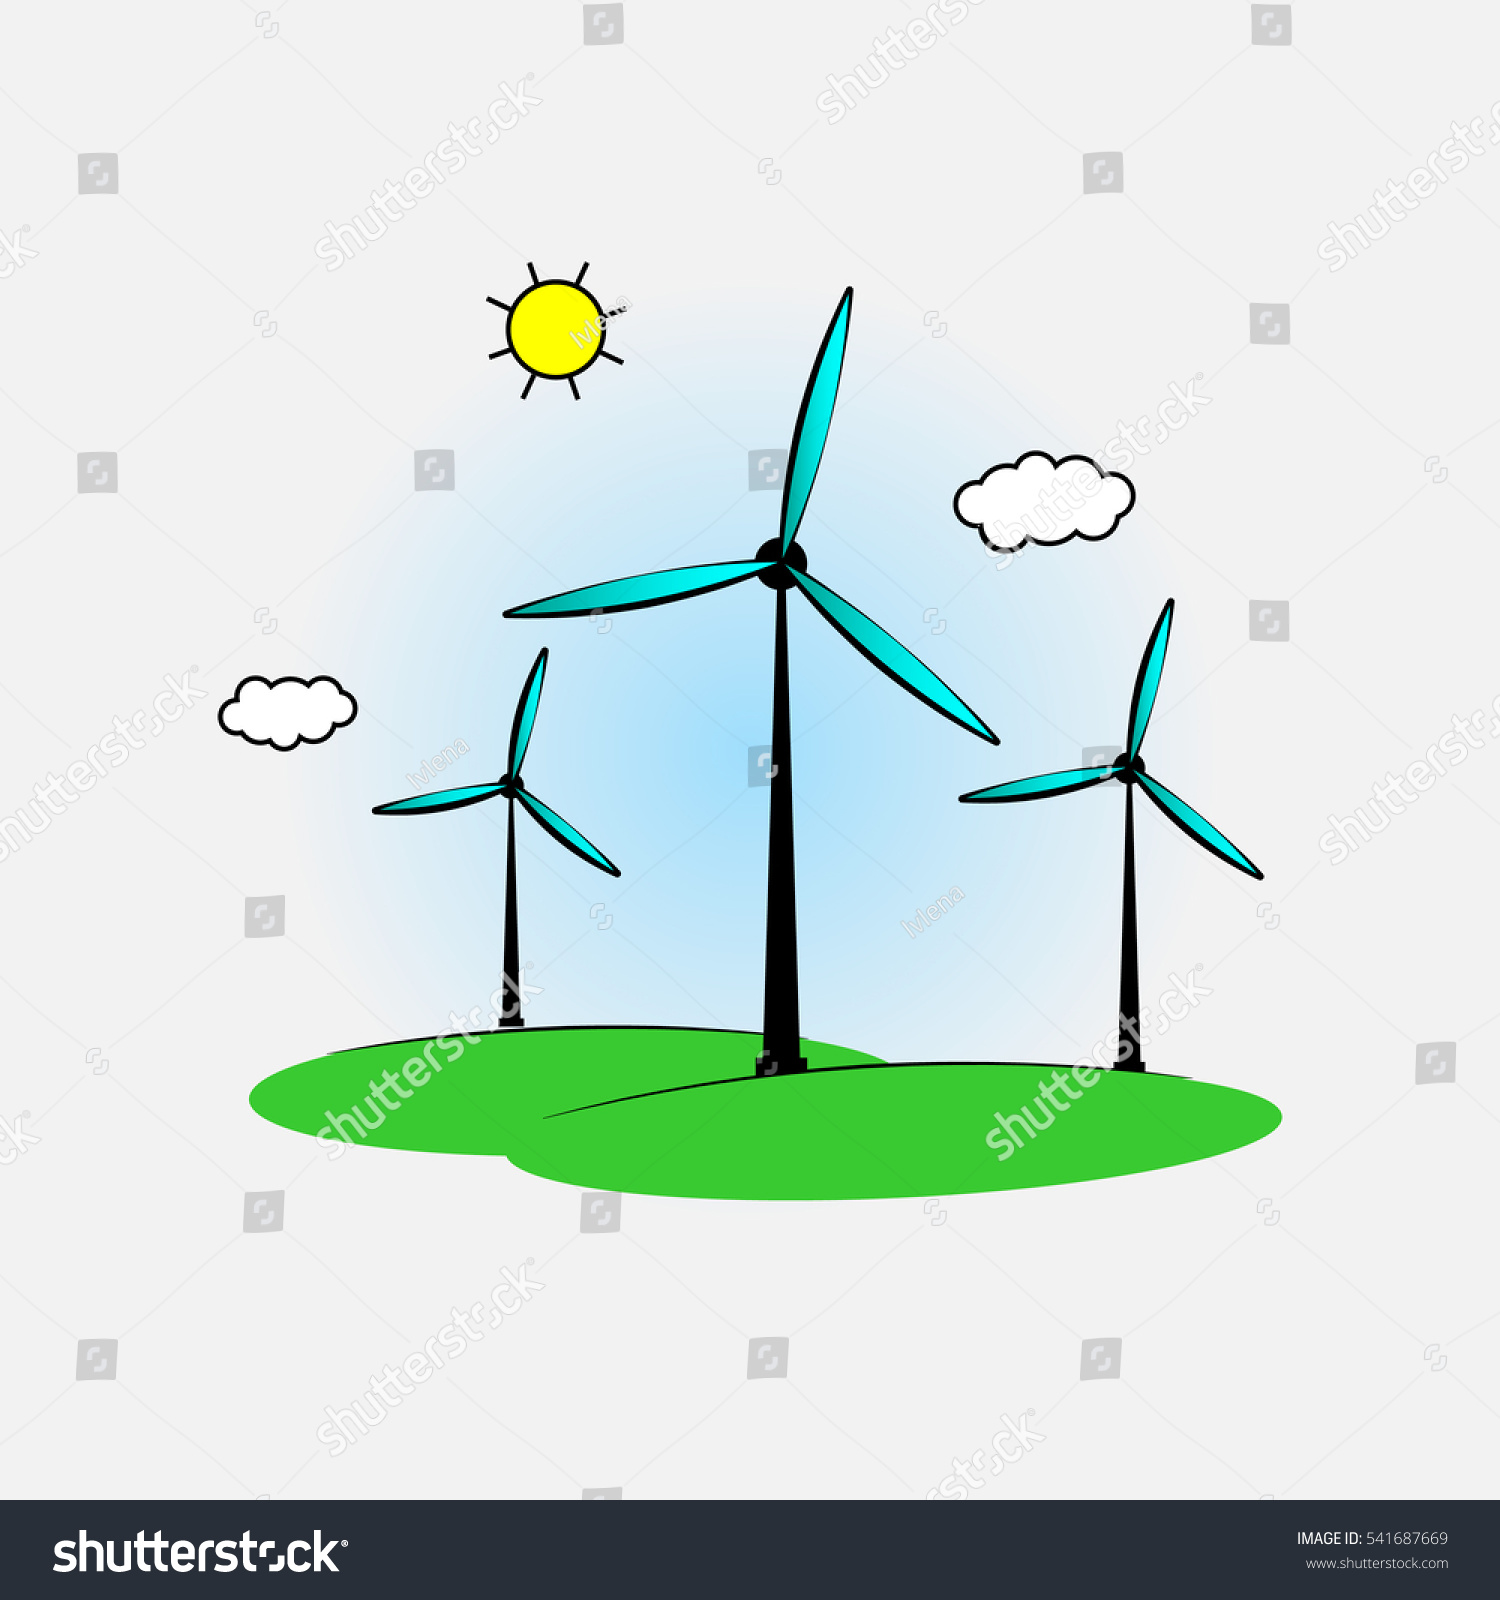 Wind Power Generators Eps 10 Vector Stock Royalty Free Diagram Also Generator Diagrams On Turbine Illustration Energy Ecological Concept